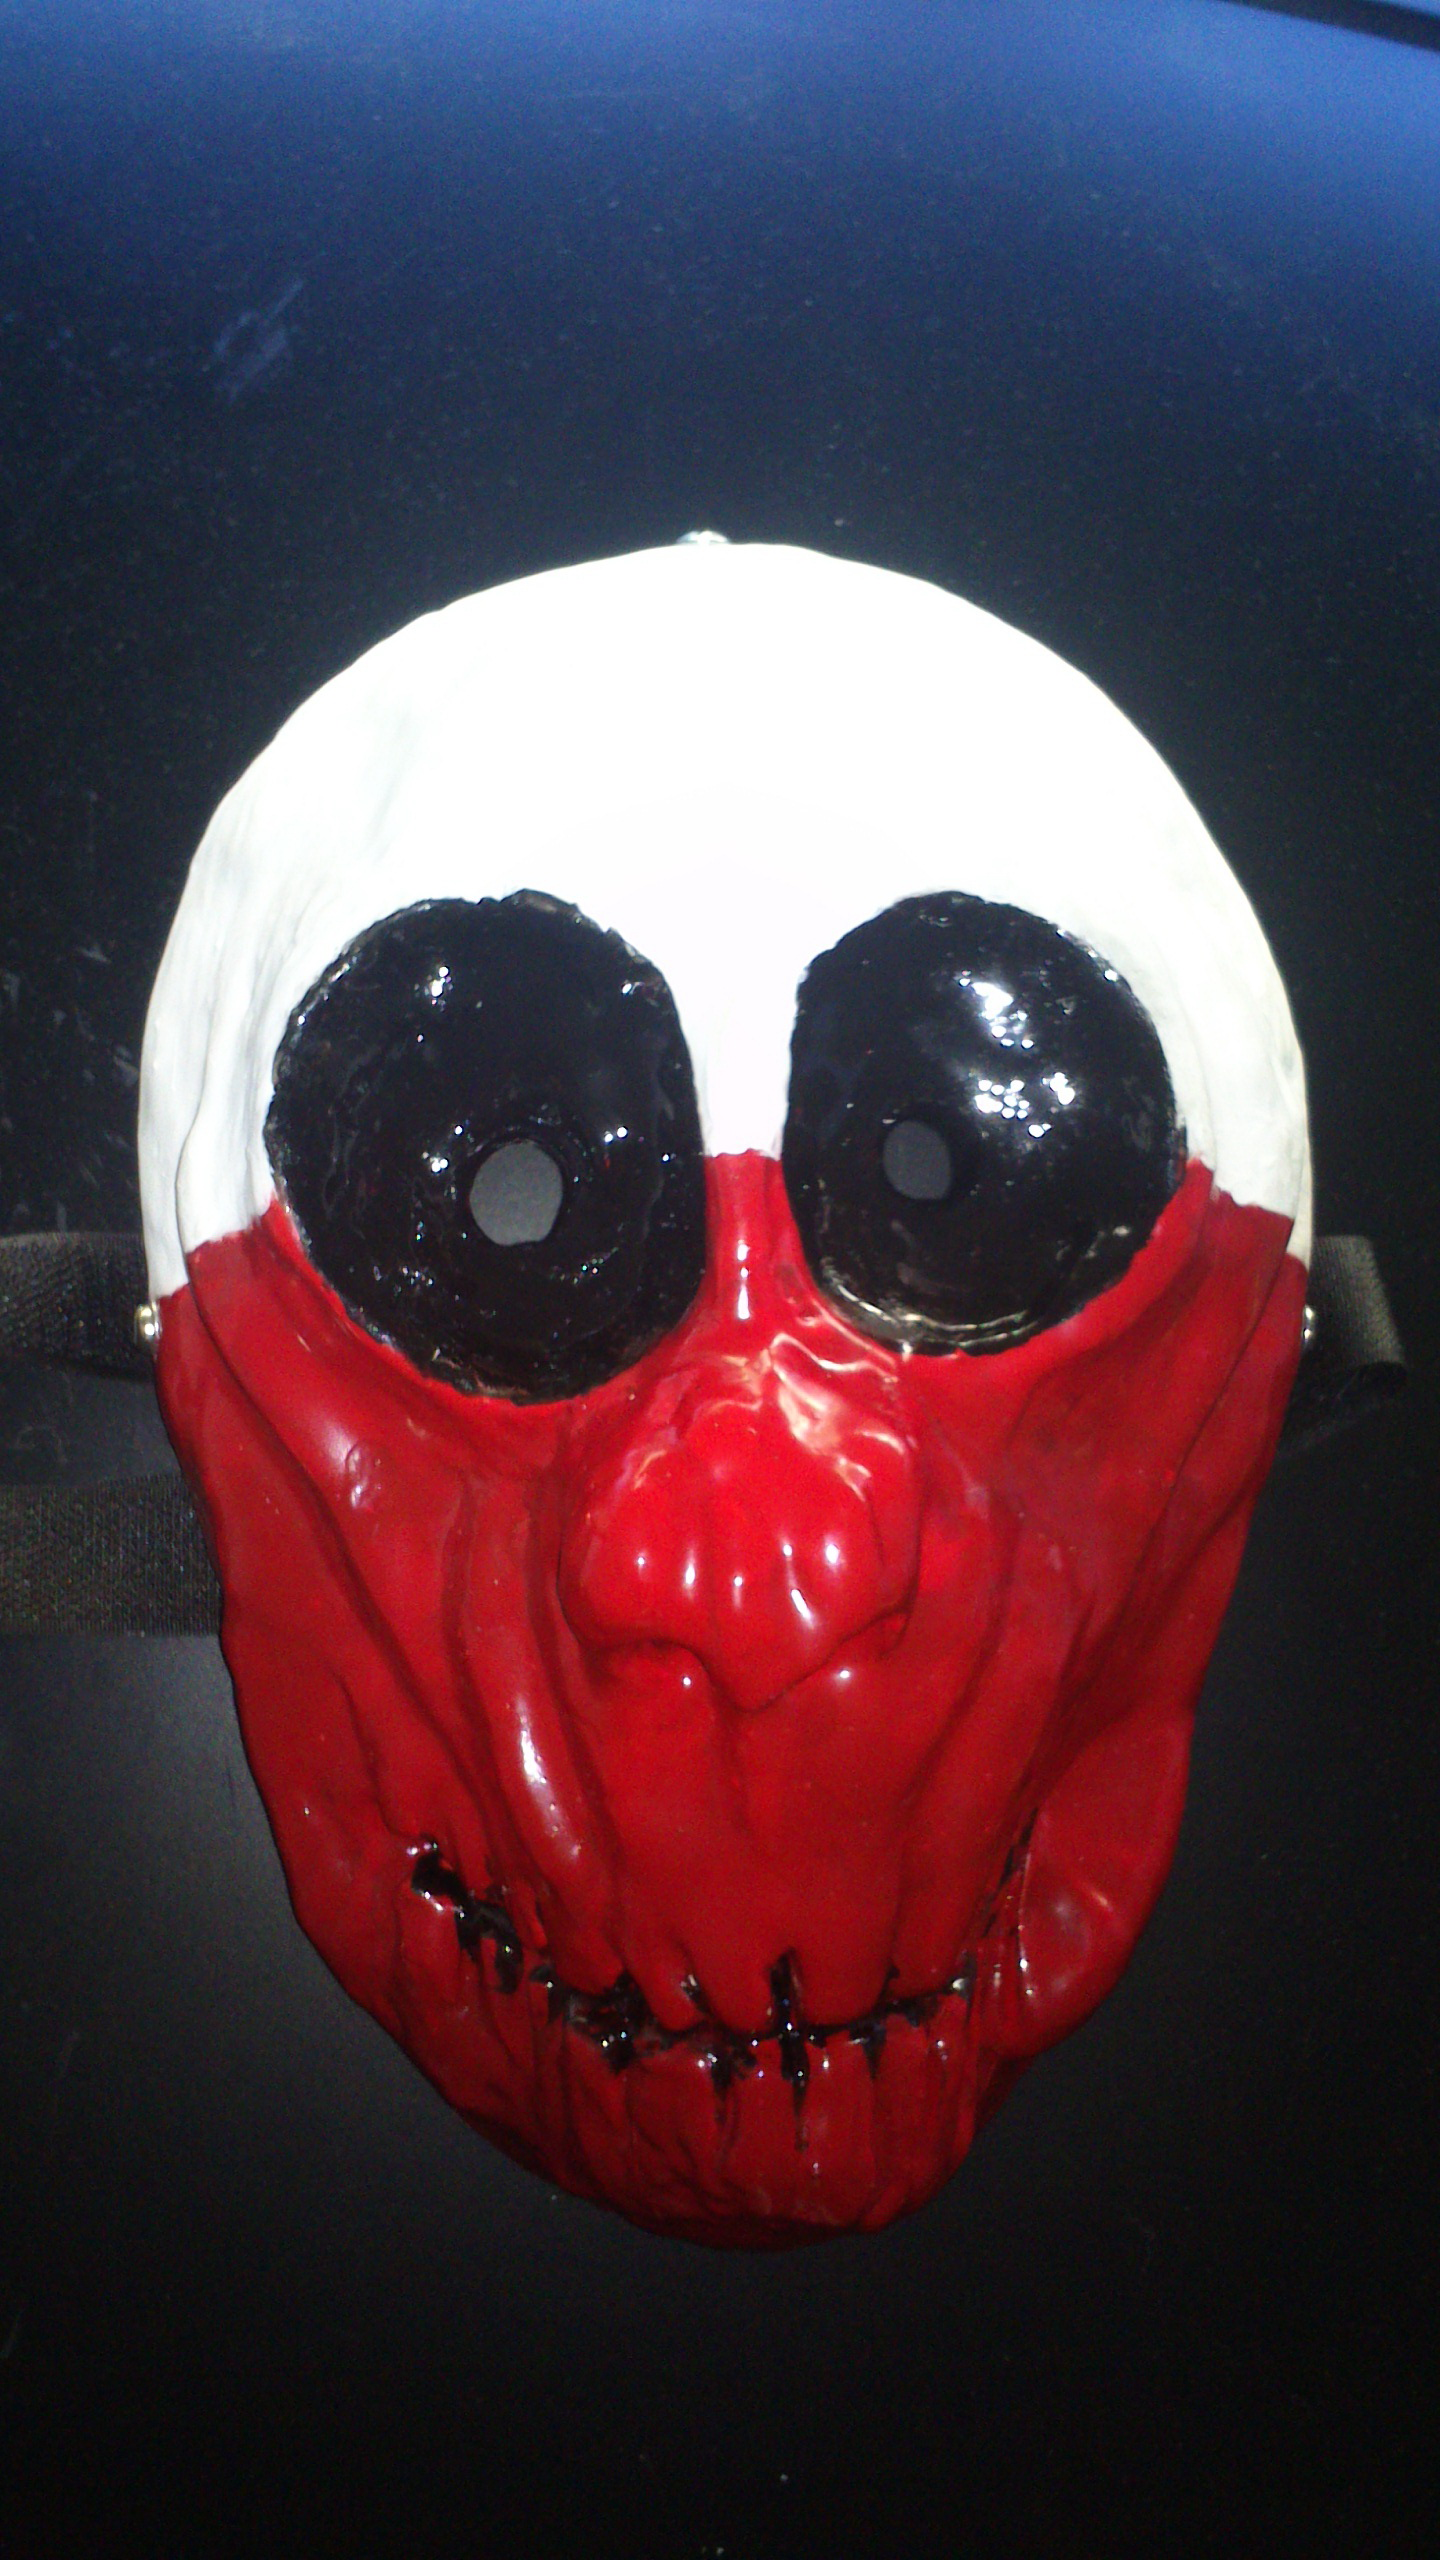 Making a mask out of Fiberglass-Resin.